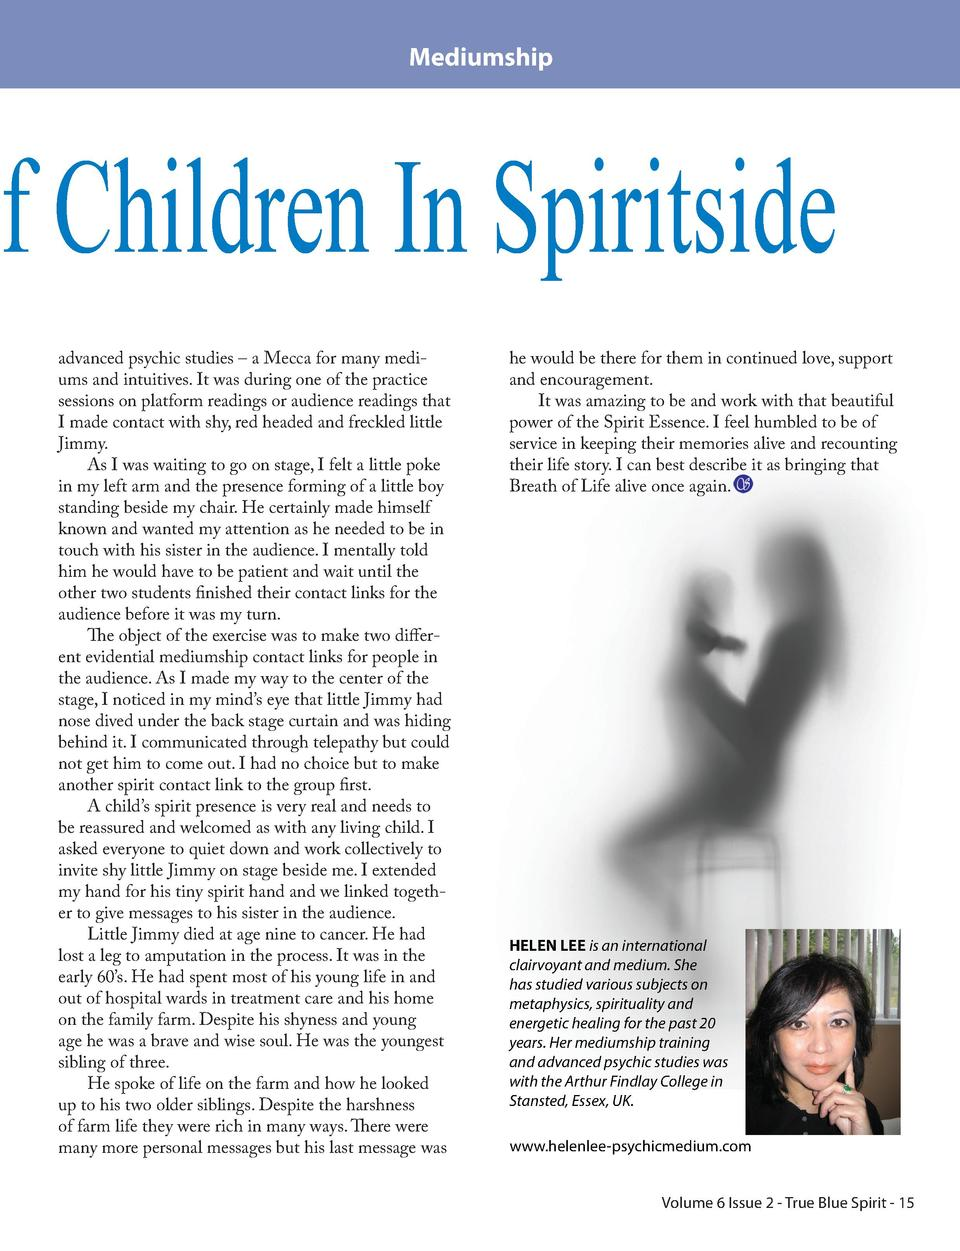 Mediumship  Of Children In Spiritside advanced psychic studies     a Mecca for many mediums and intuitives. It was during ...